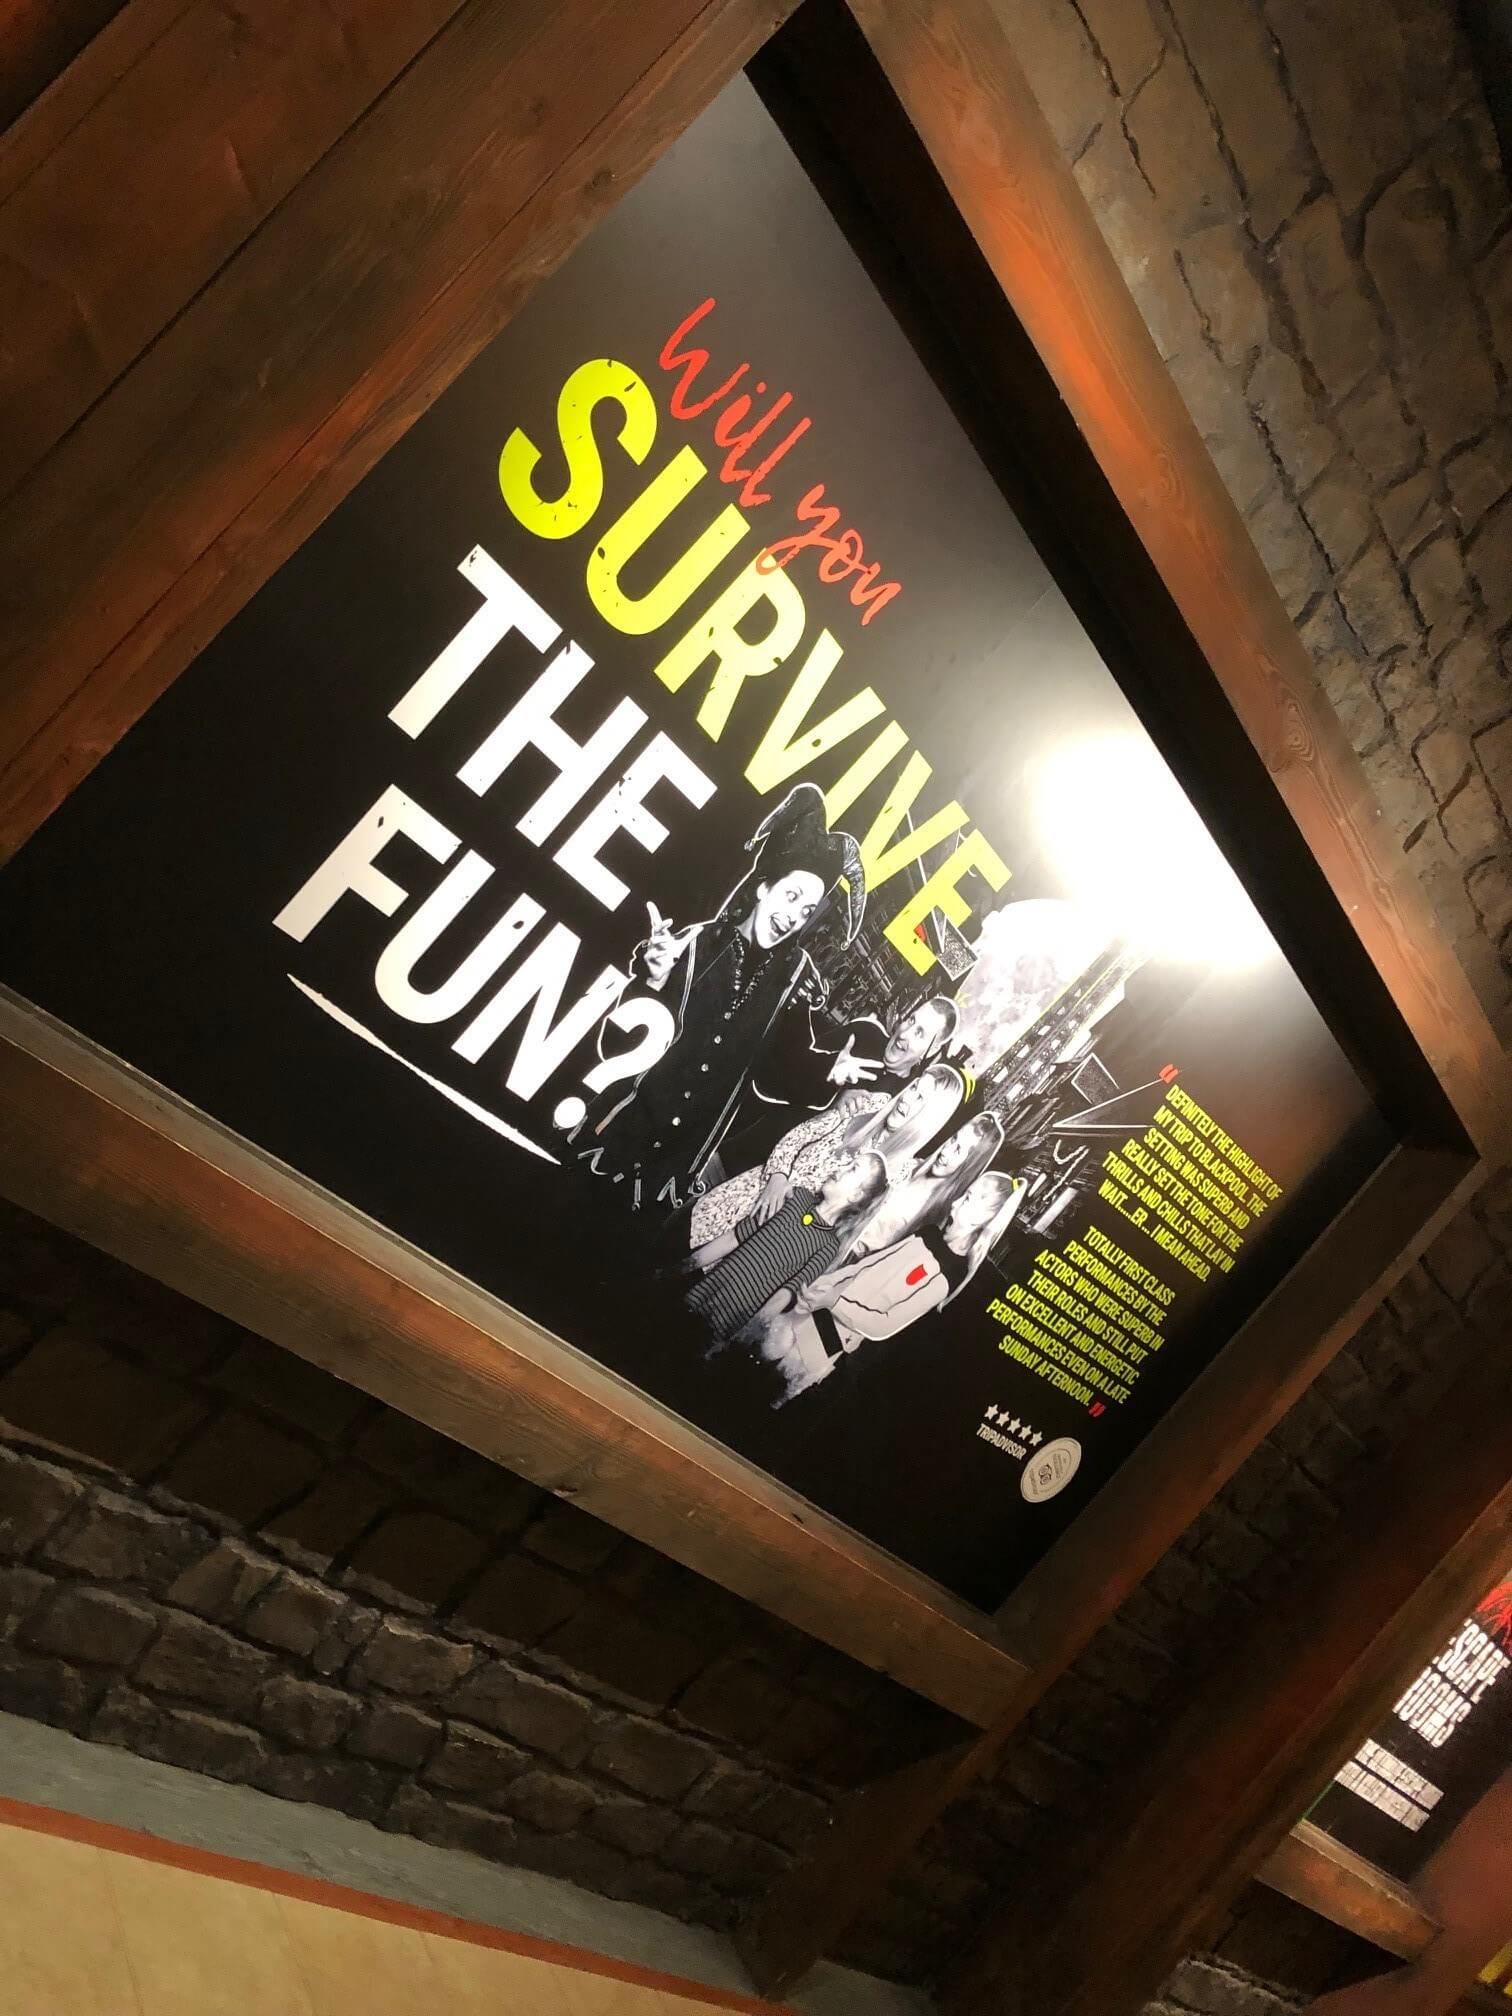 Blackpool tower dungeons escape rooms internal foamex sign